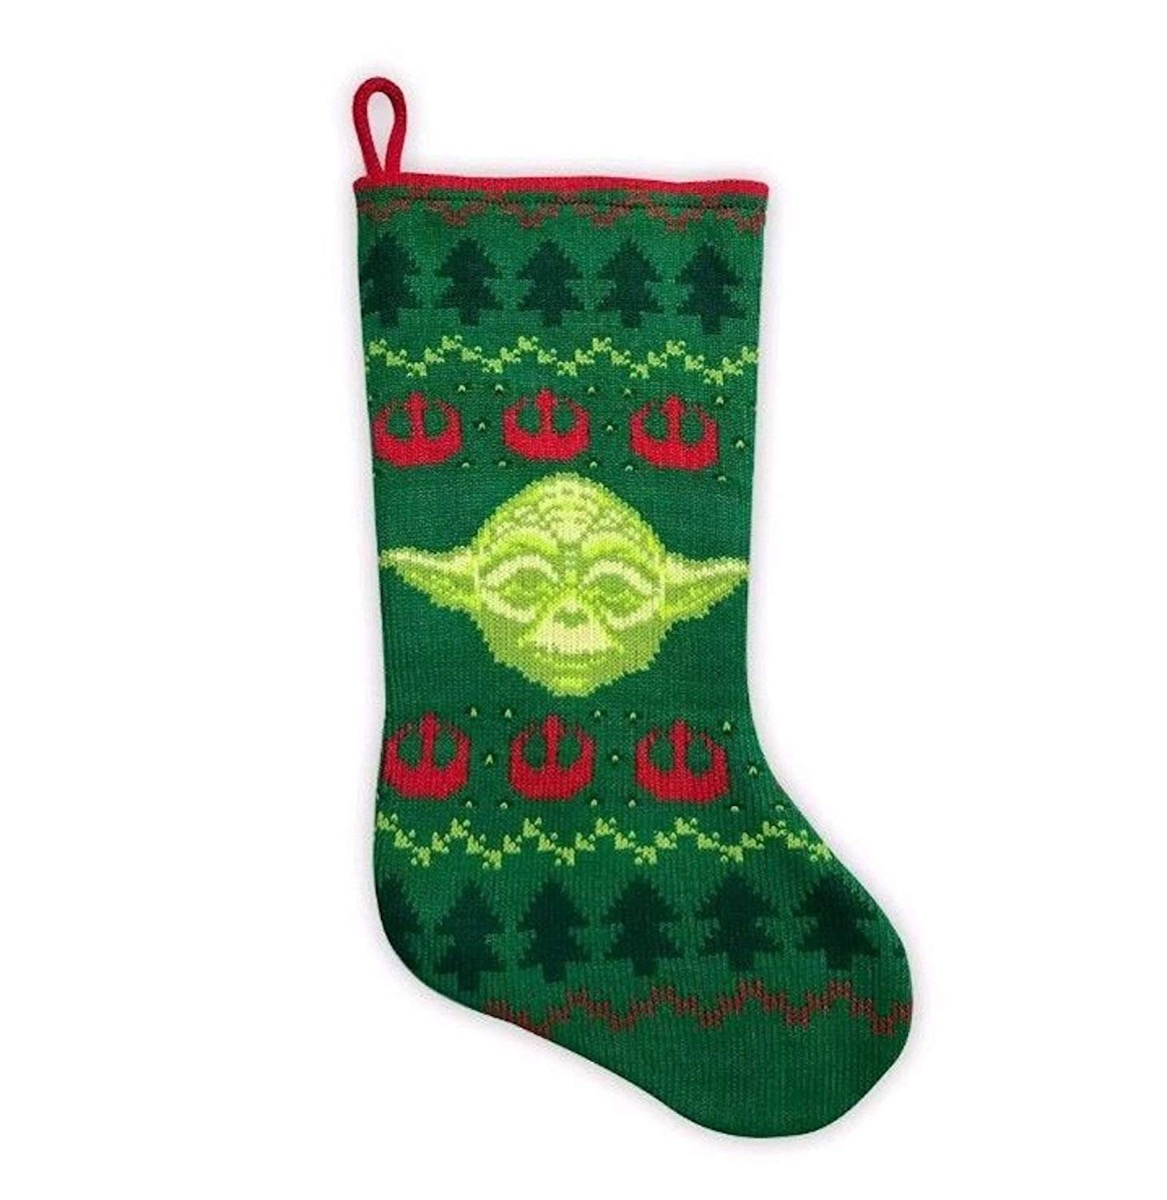 green and red knit yoda stocking